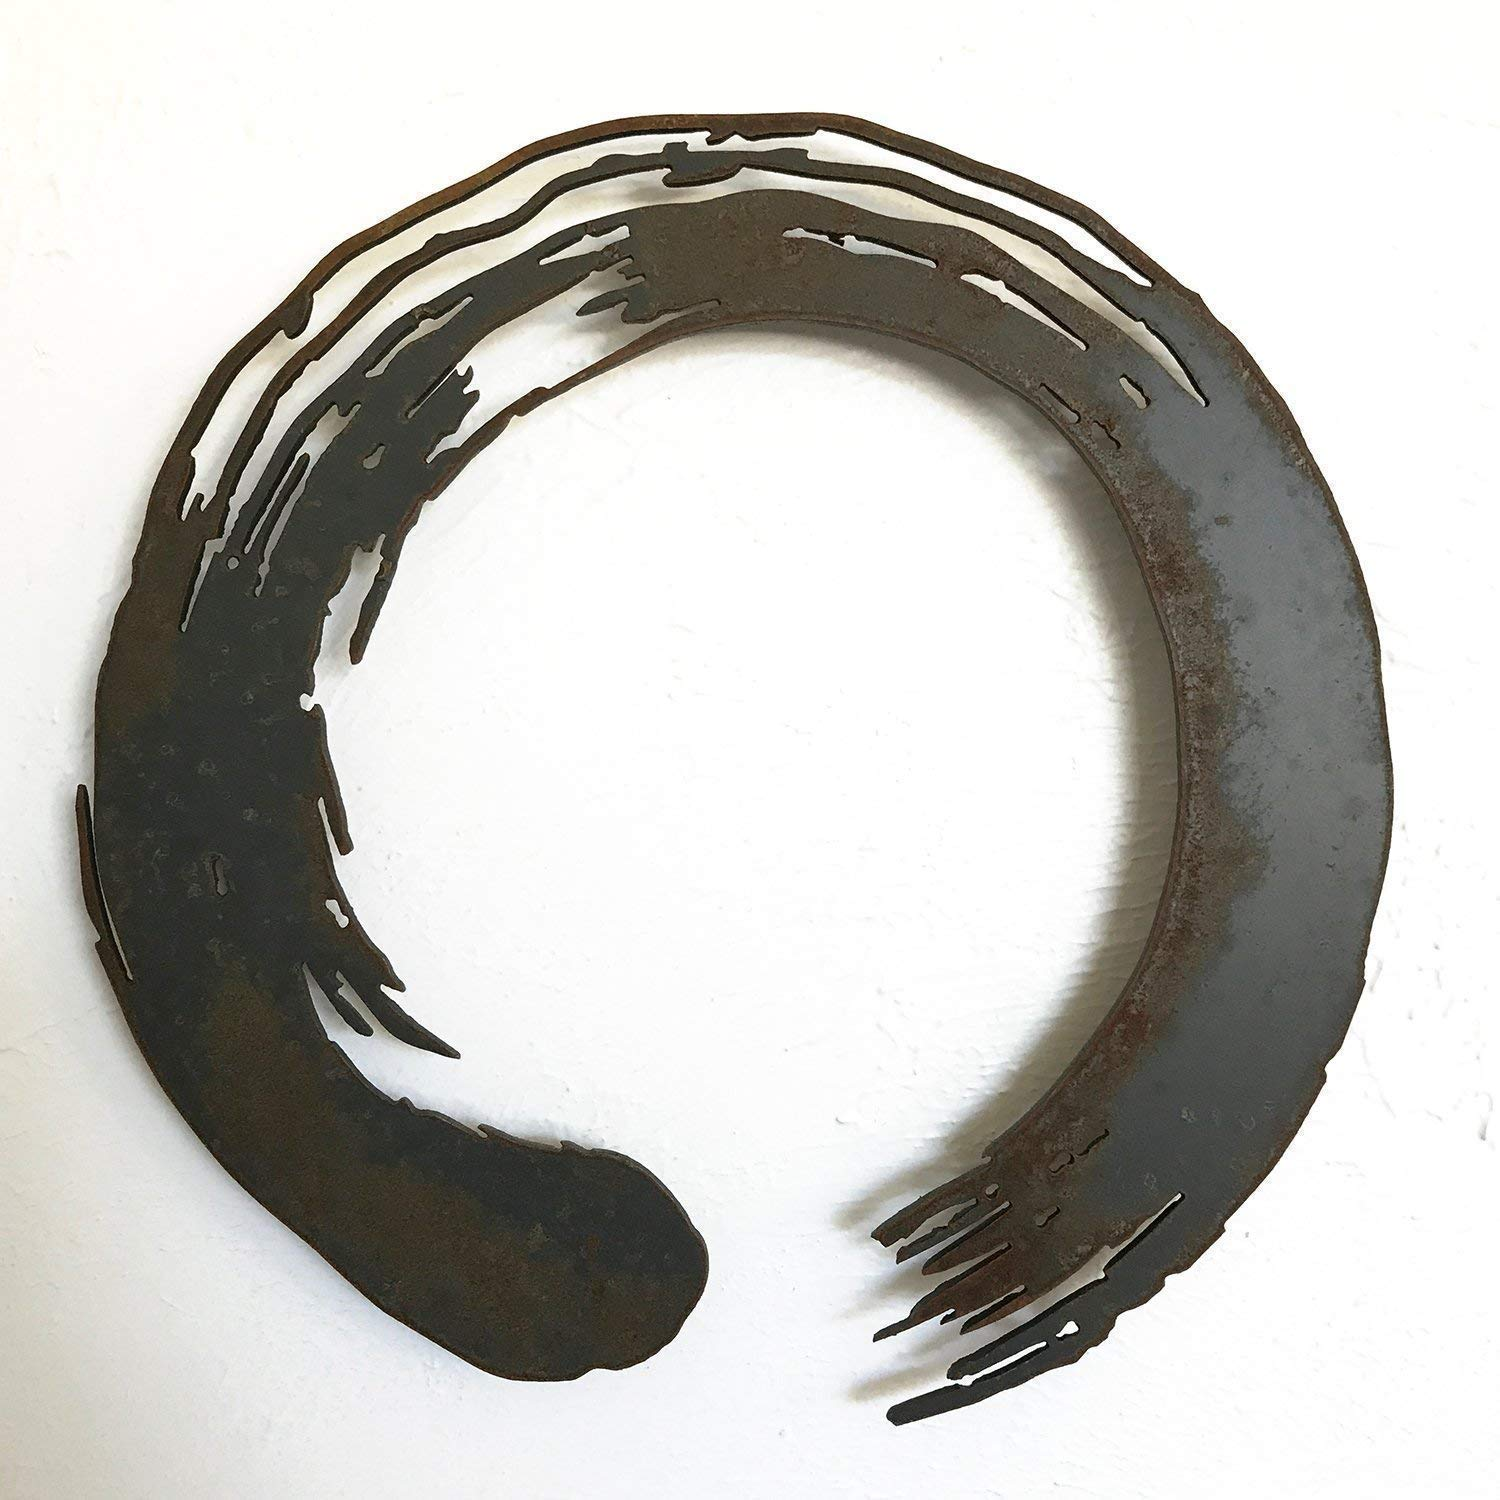 Amazon Com Enso Circle Metal Wall Art Home Decor Choose 12 17 24 Or 30 Wide Choose Your Patina Color And Choose From A Variety Of Zen Yoga And Buddhist Symbols